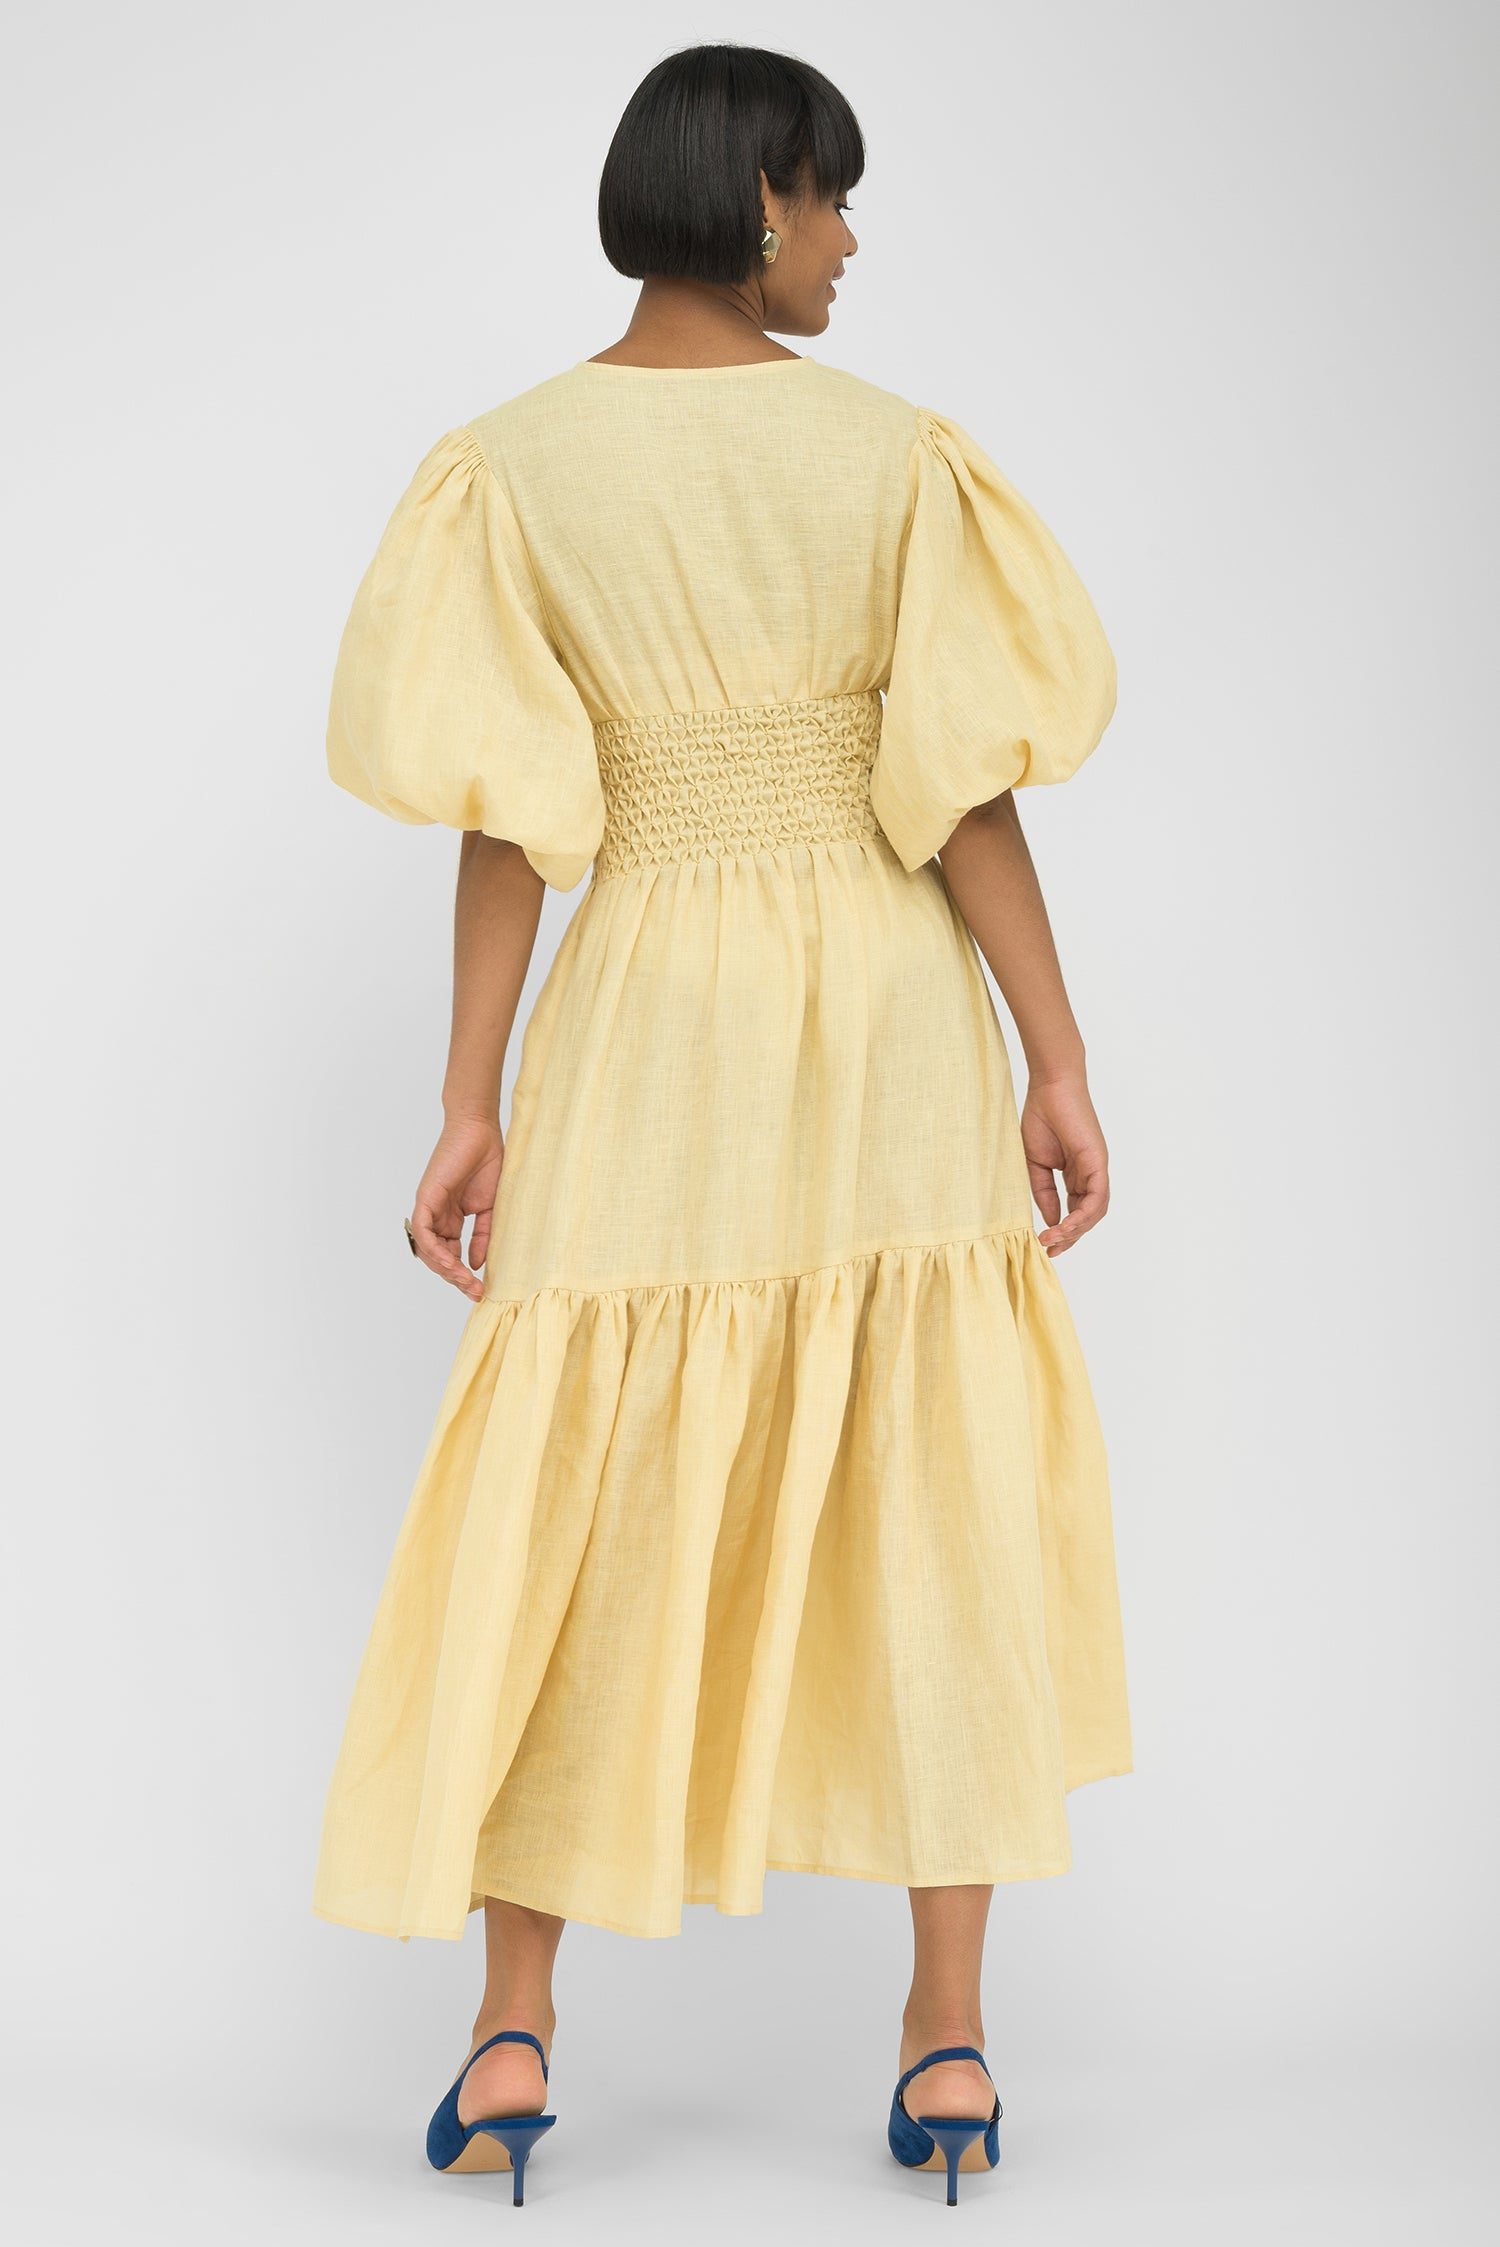 FANM MON SANDRAS Light Yellow Linen Red Floral Embroidered Midi Dress